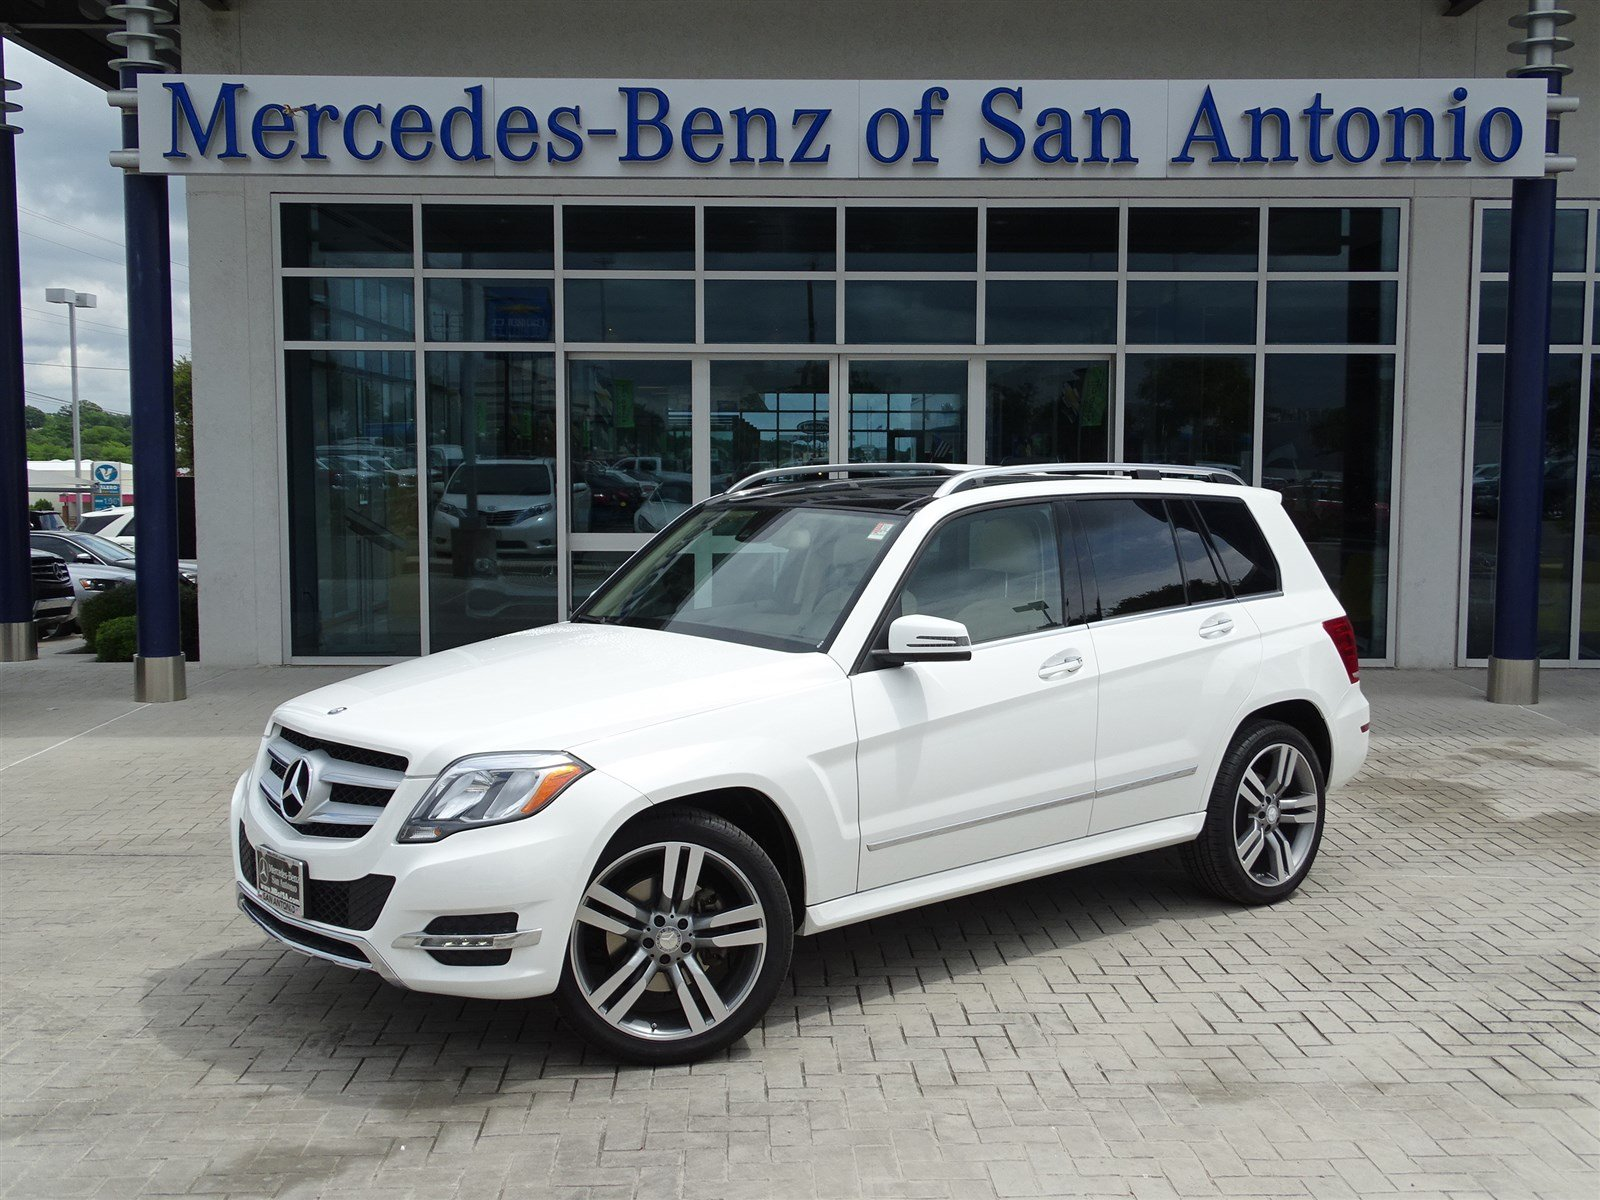 Certified pre owned vehicles for sale santa monica ca for Certified used mercedes benz for sale